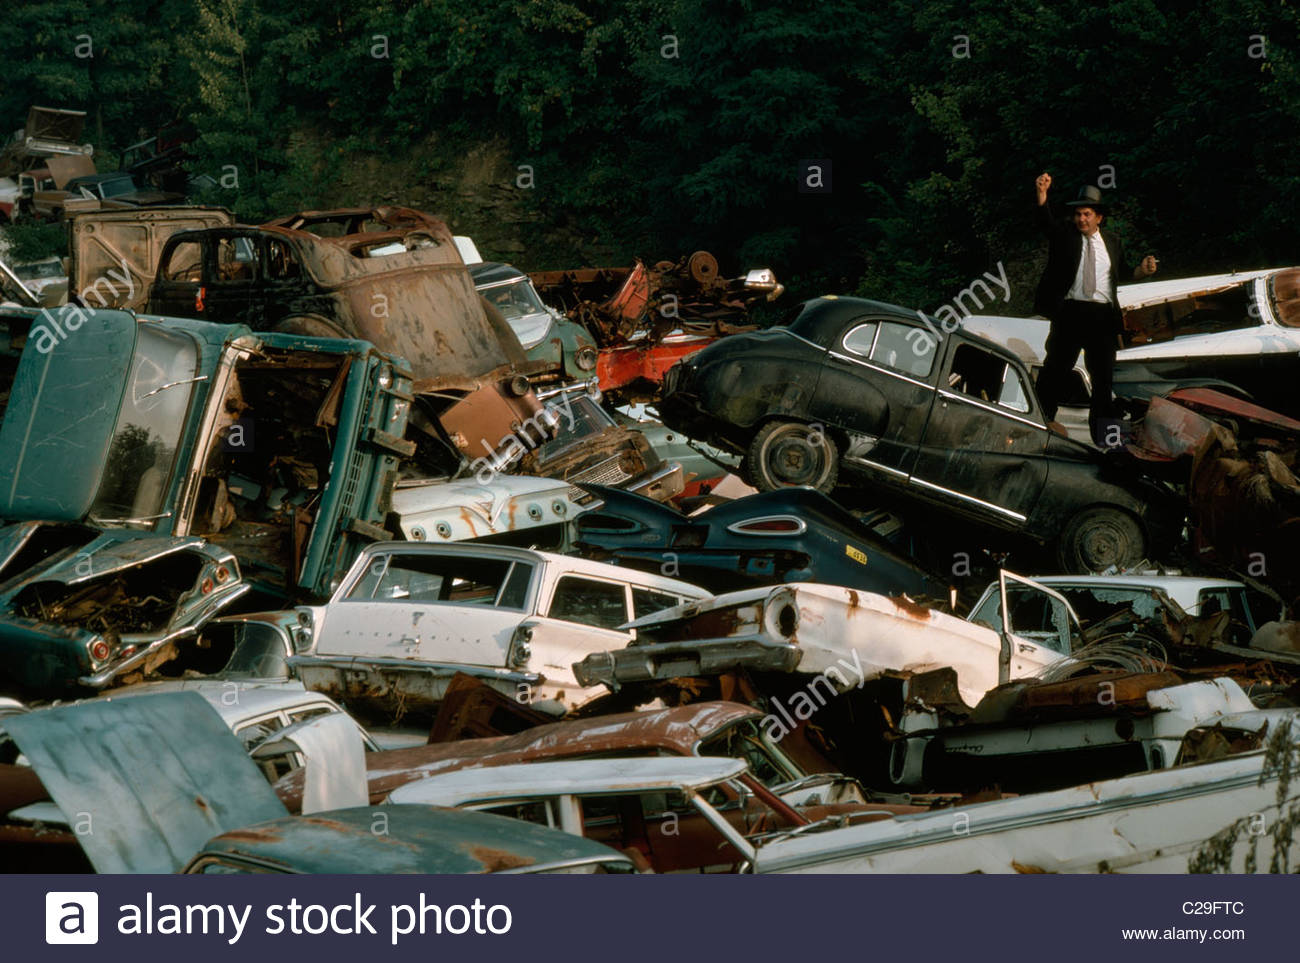 A car junkyard where cars are stored until they are crushed. - Stock Image